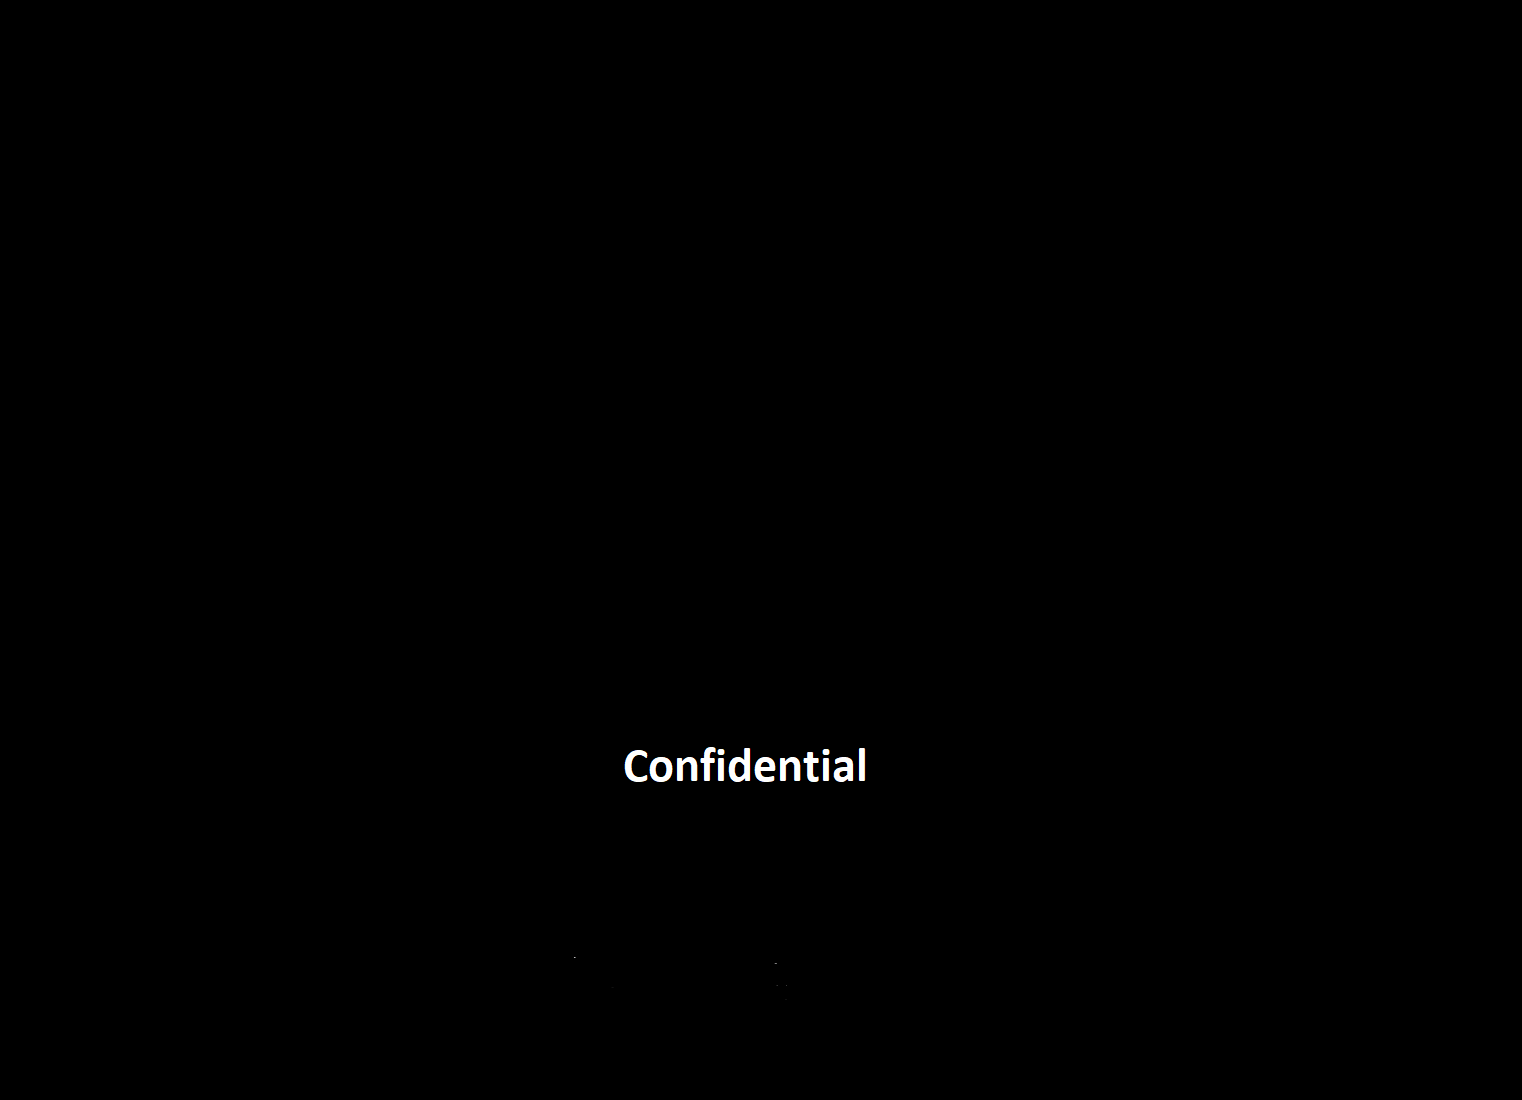 Confidential Project by Modubuild